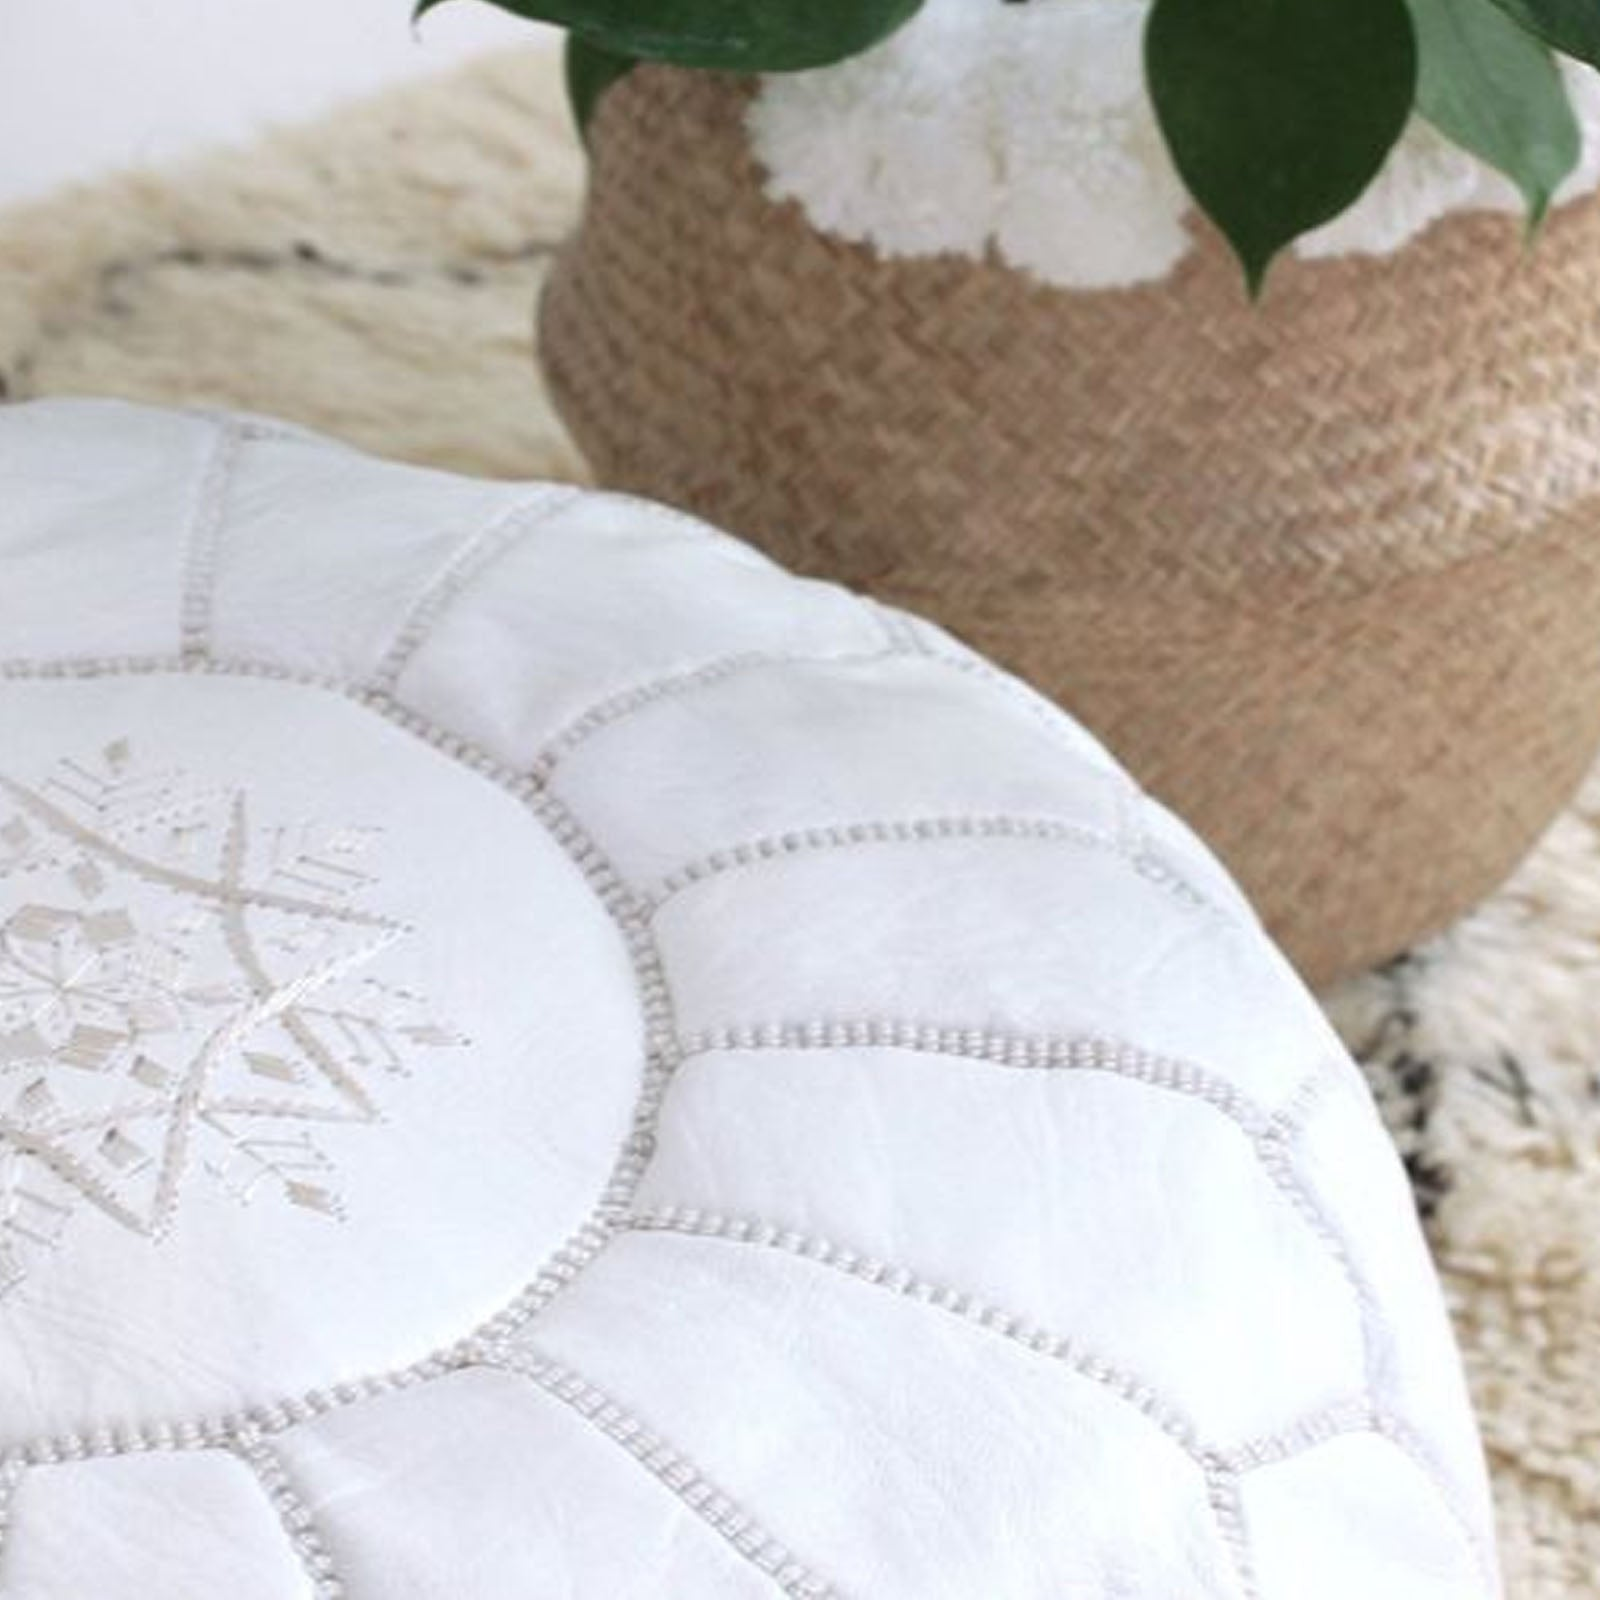 Handmade Genuine Leather Moroccan Style Pouf morocco-white -  بوف جلد طبيعي مصنوع يدويًا على الطراز المغربي - Shop Online Furniture and Home Decor Store in Dubai, UAE at ebarza